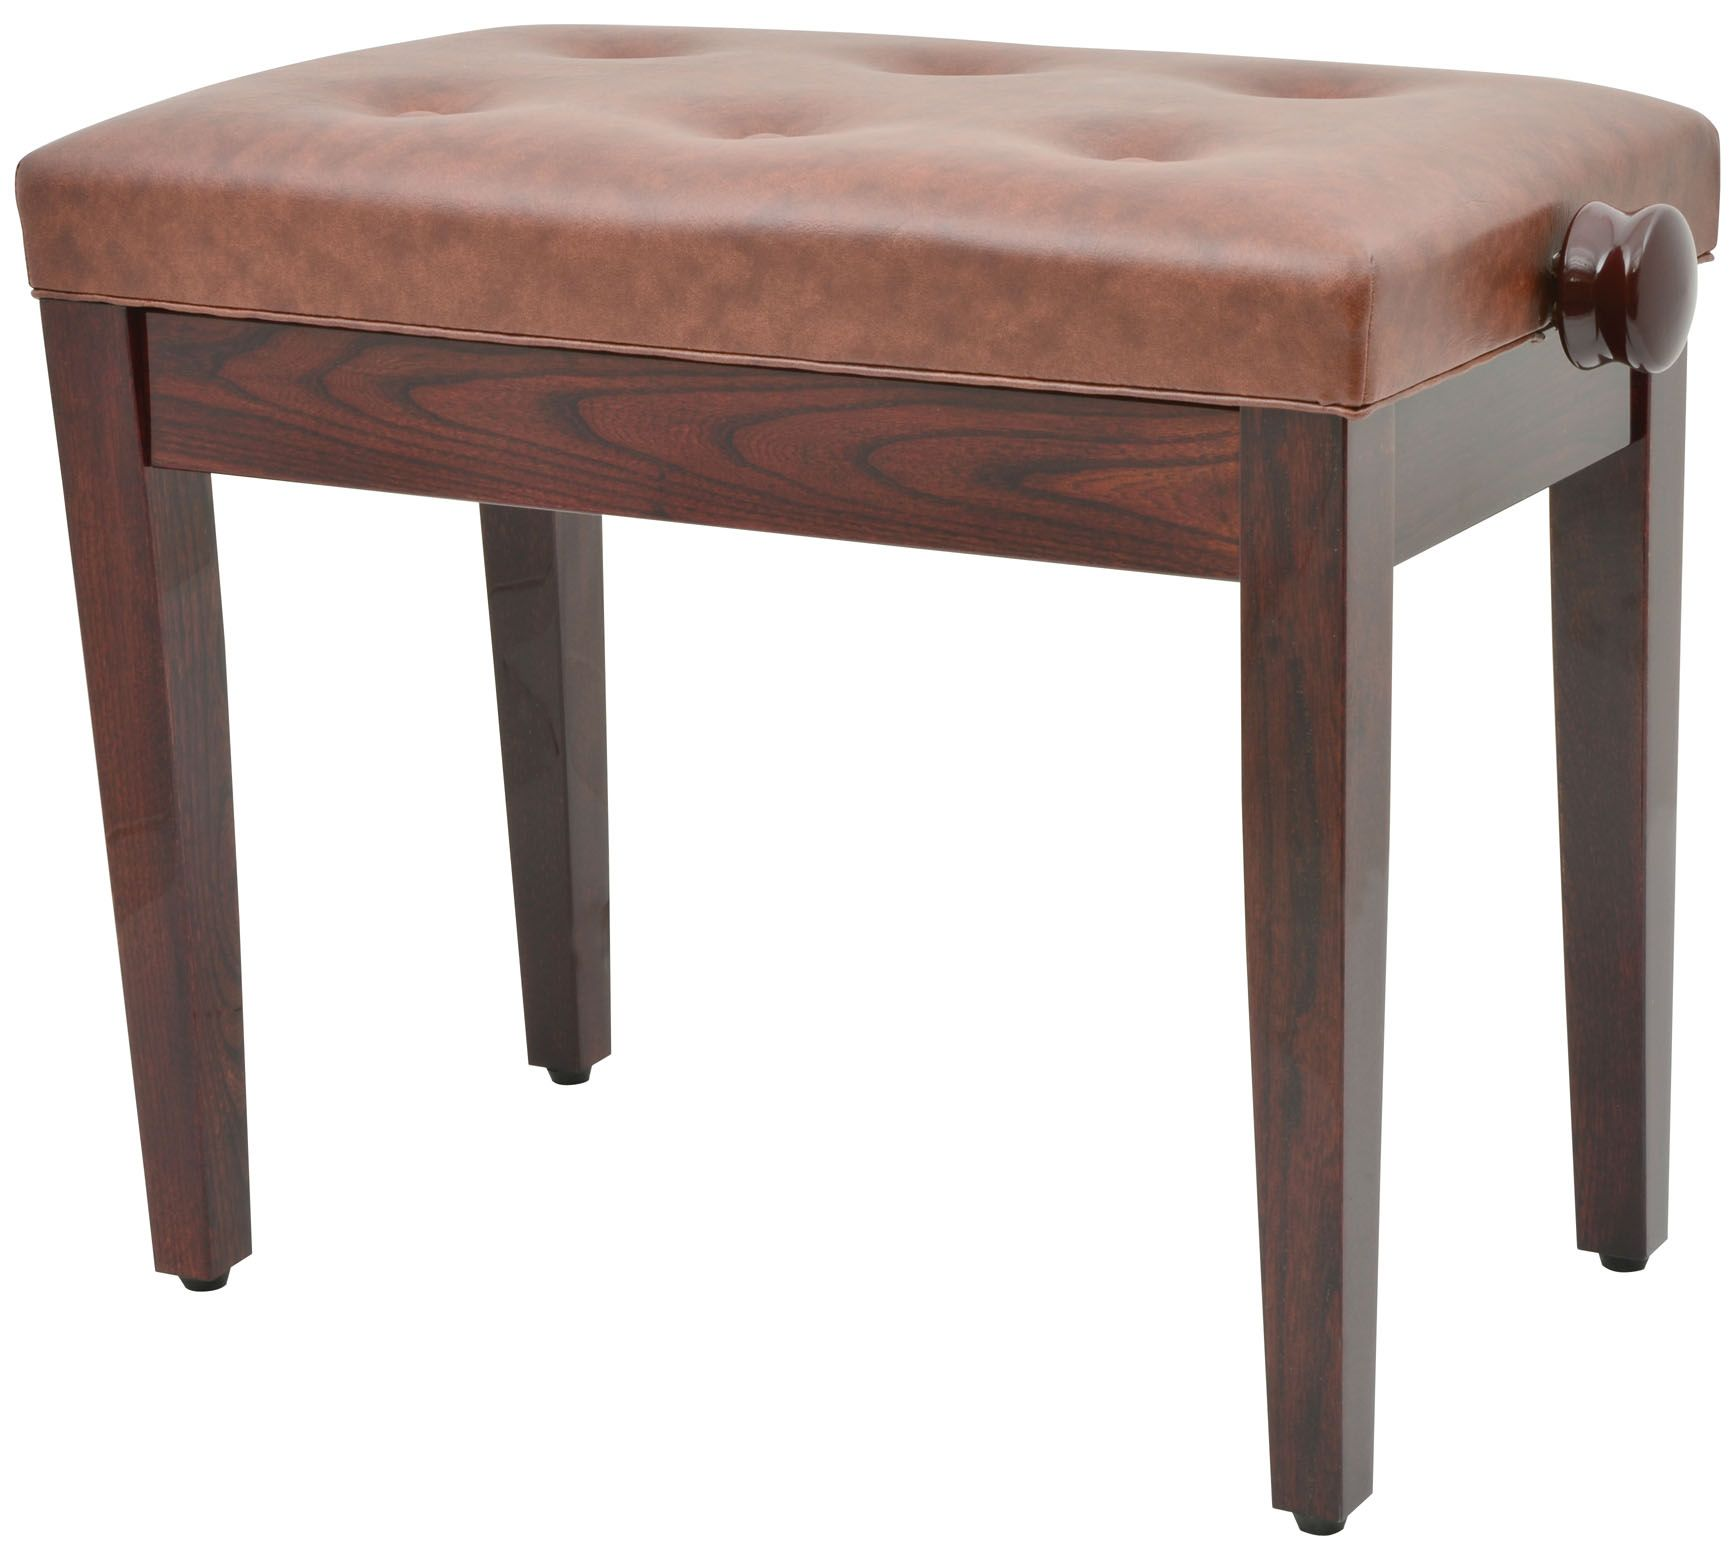 Piano Keyboard Bench Stool Seat In Brown With Storage 180